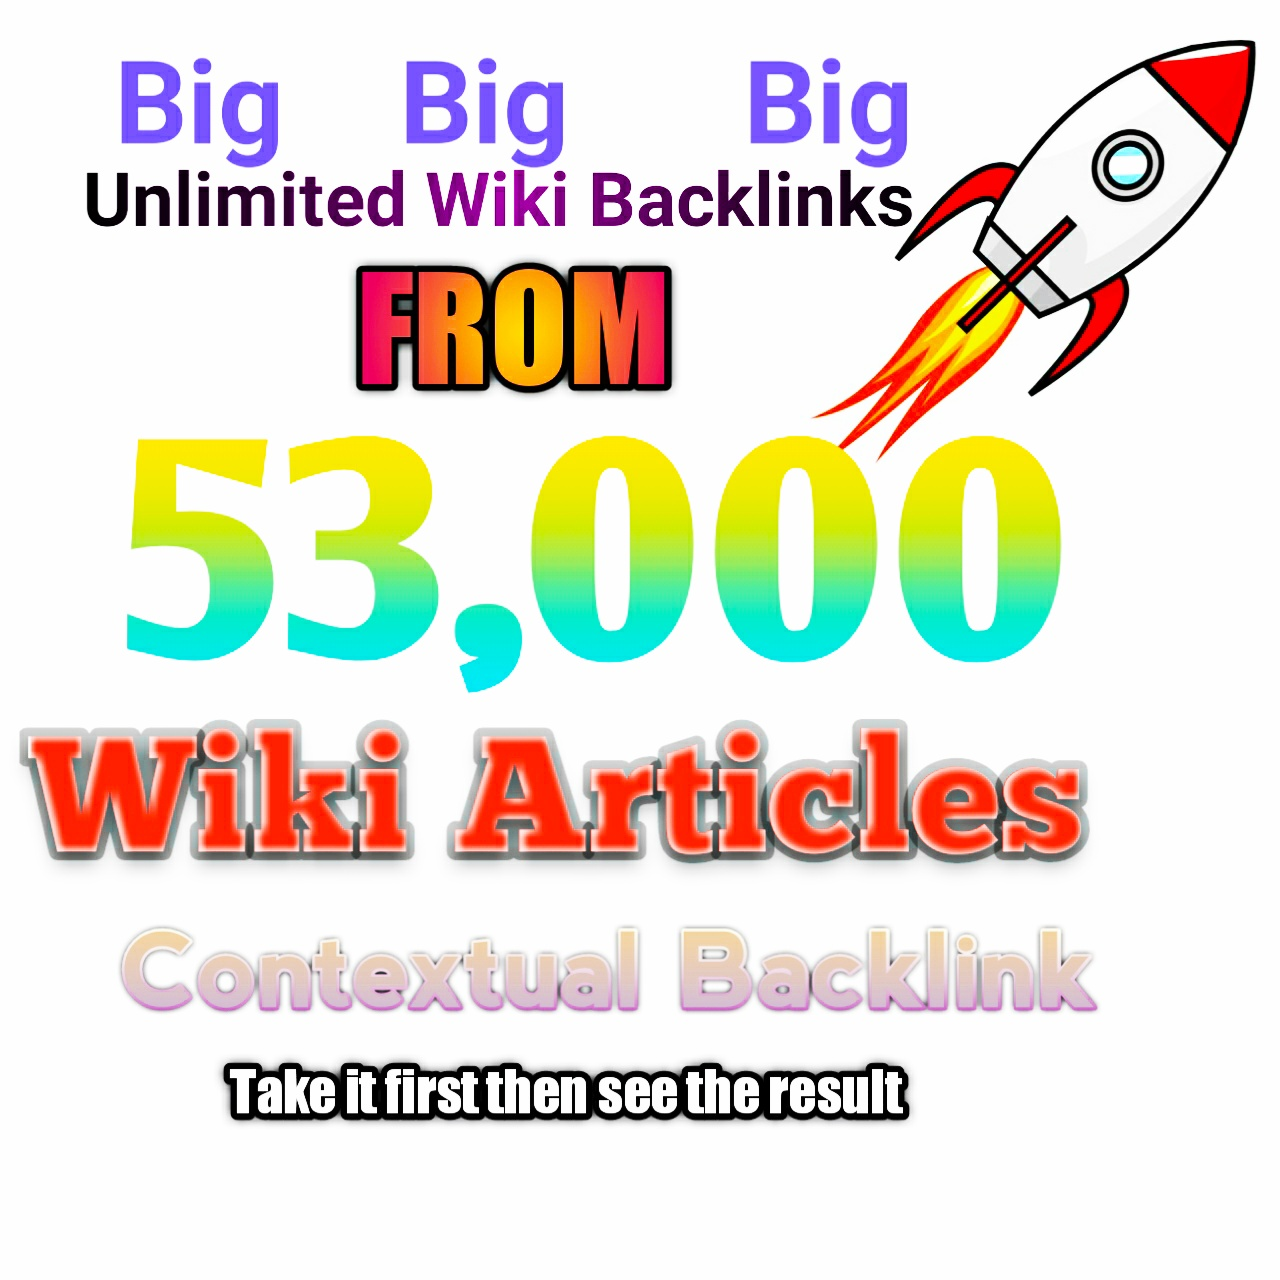 Unlimited Wiki Backlinks from 53,000 Wiki Articles Rank your site